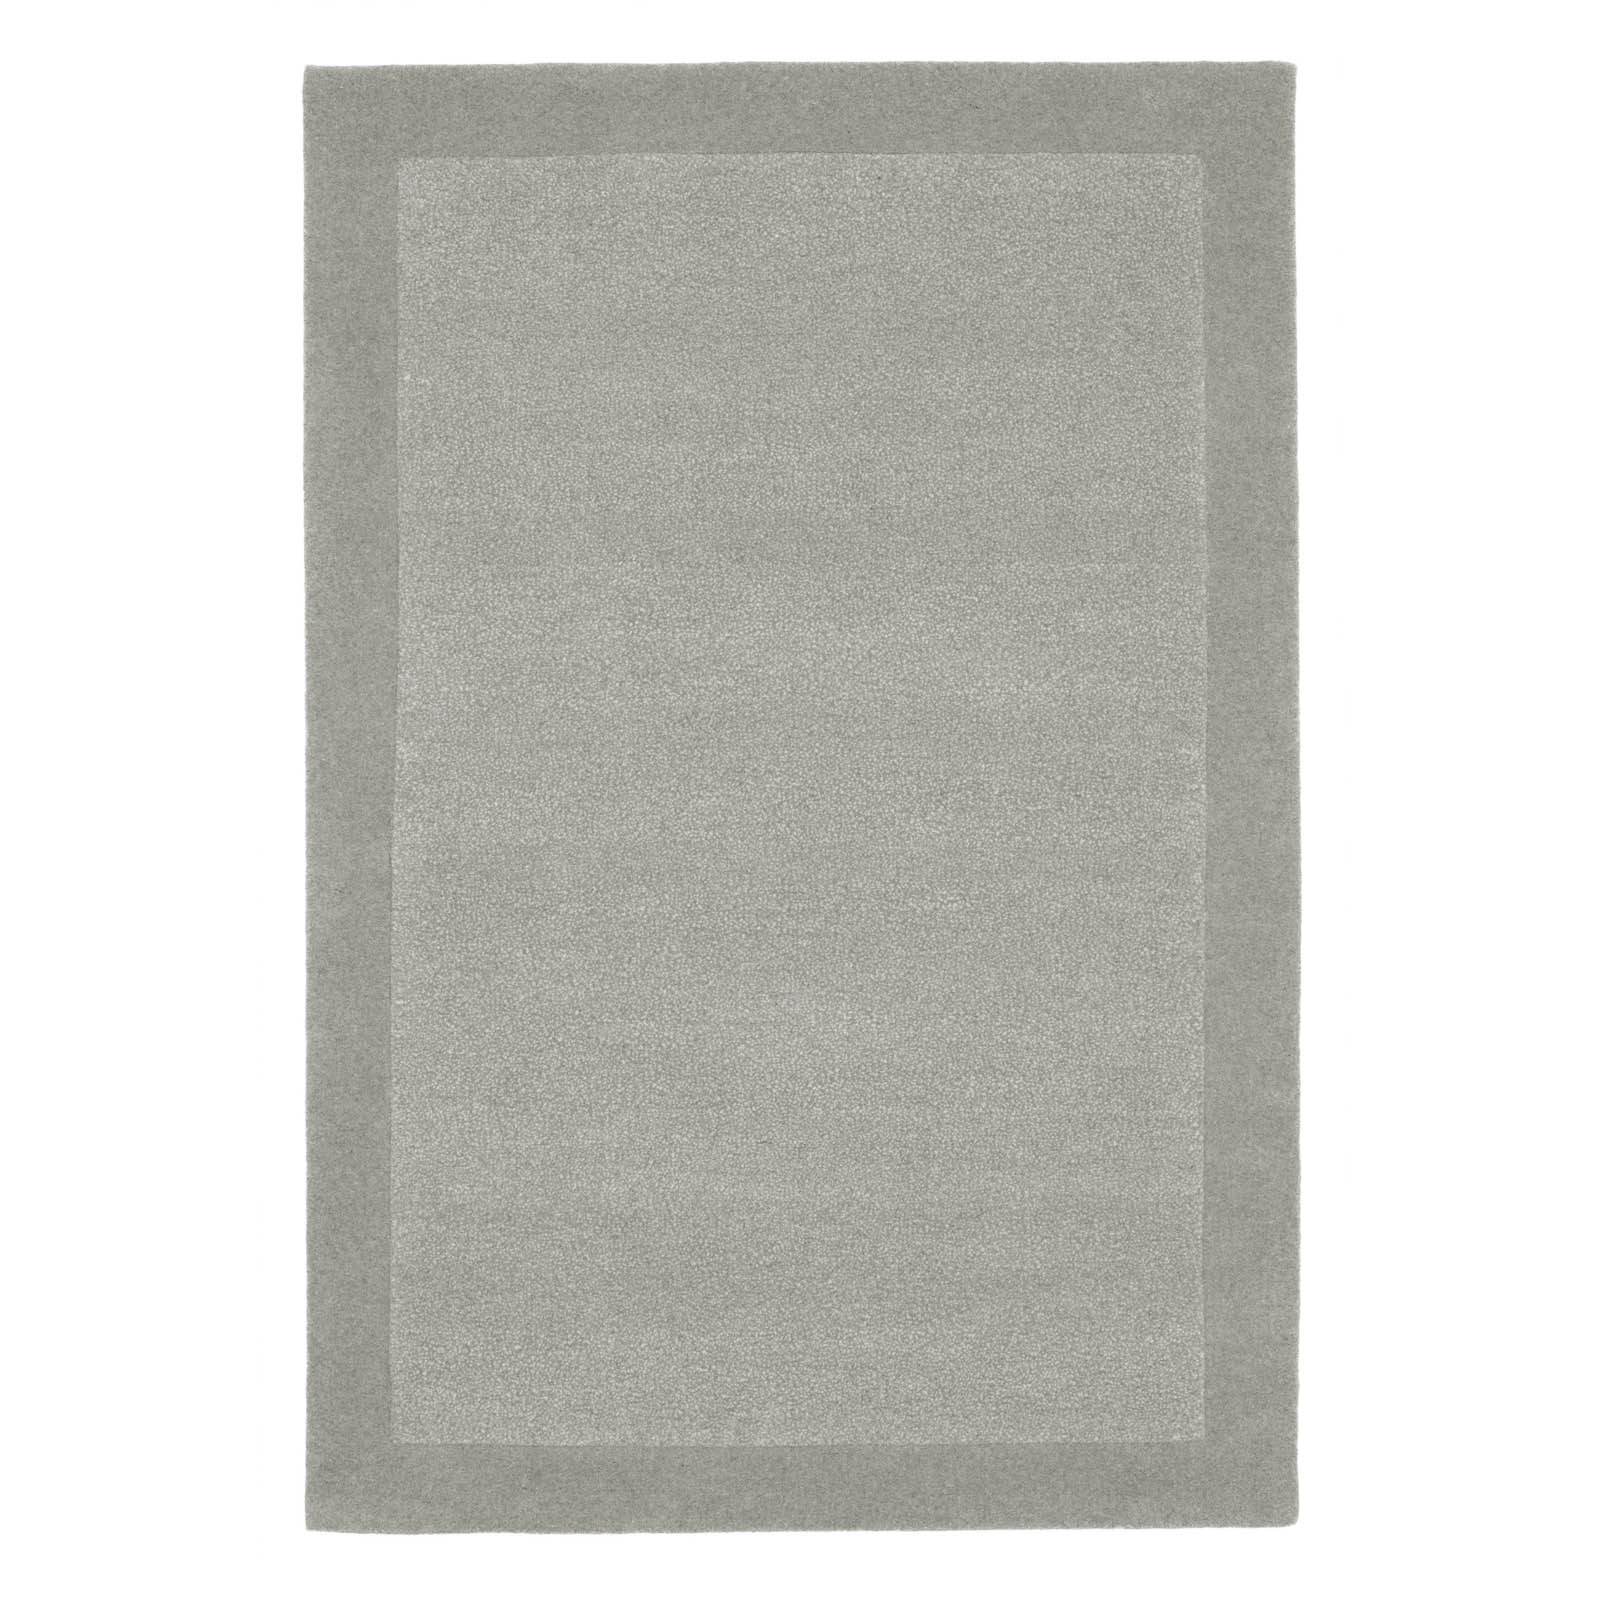 Steppes Border Rugs in Grey